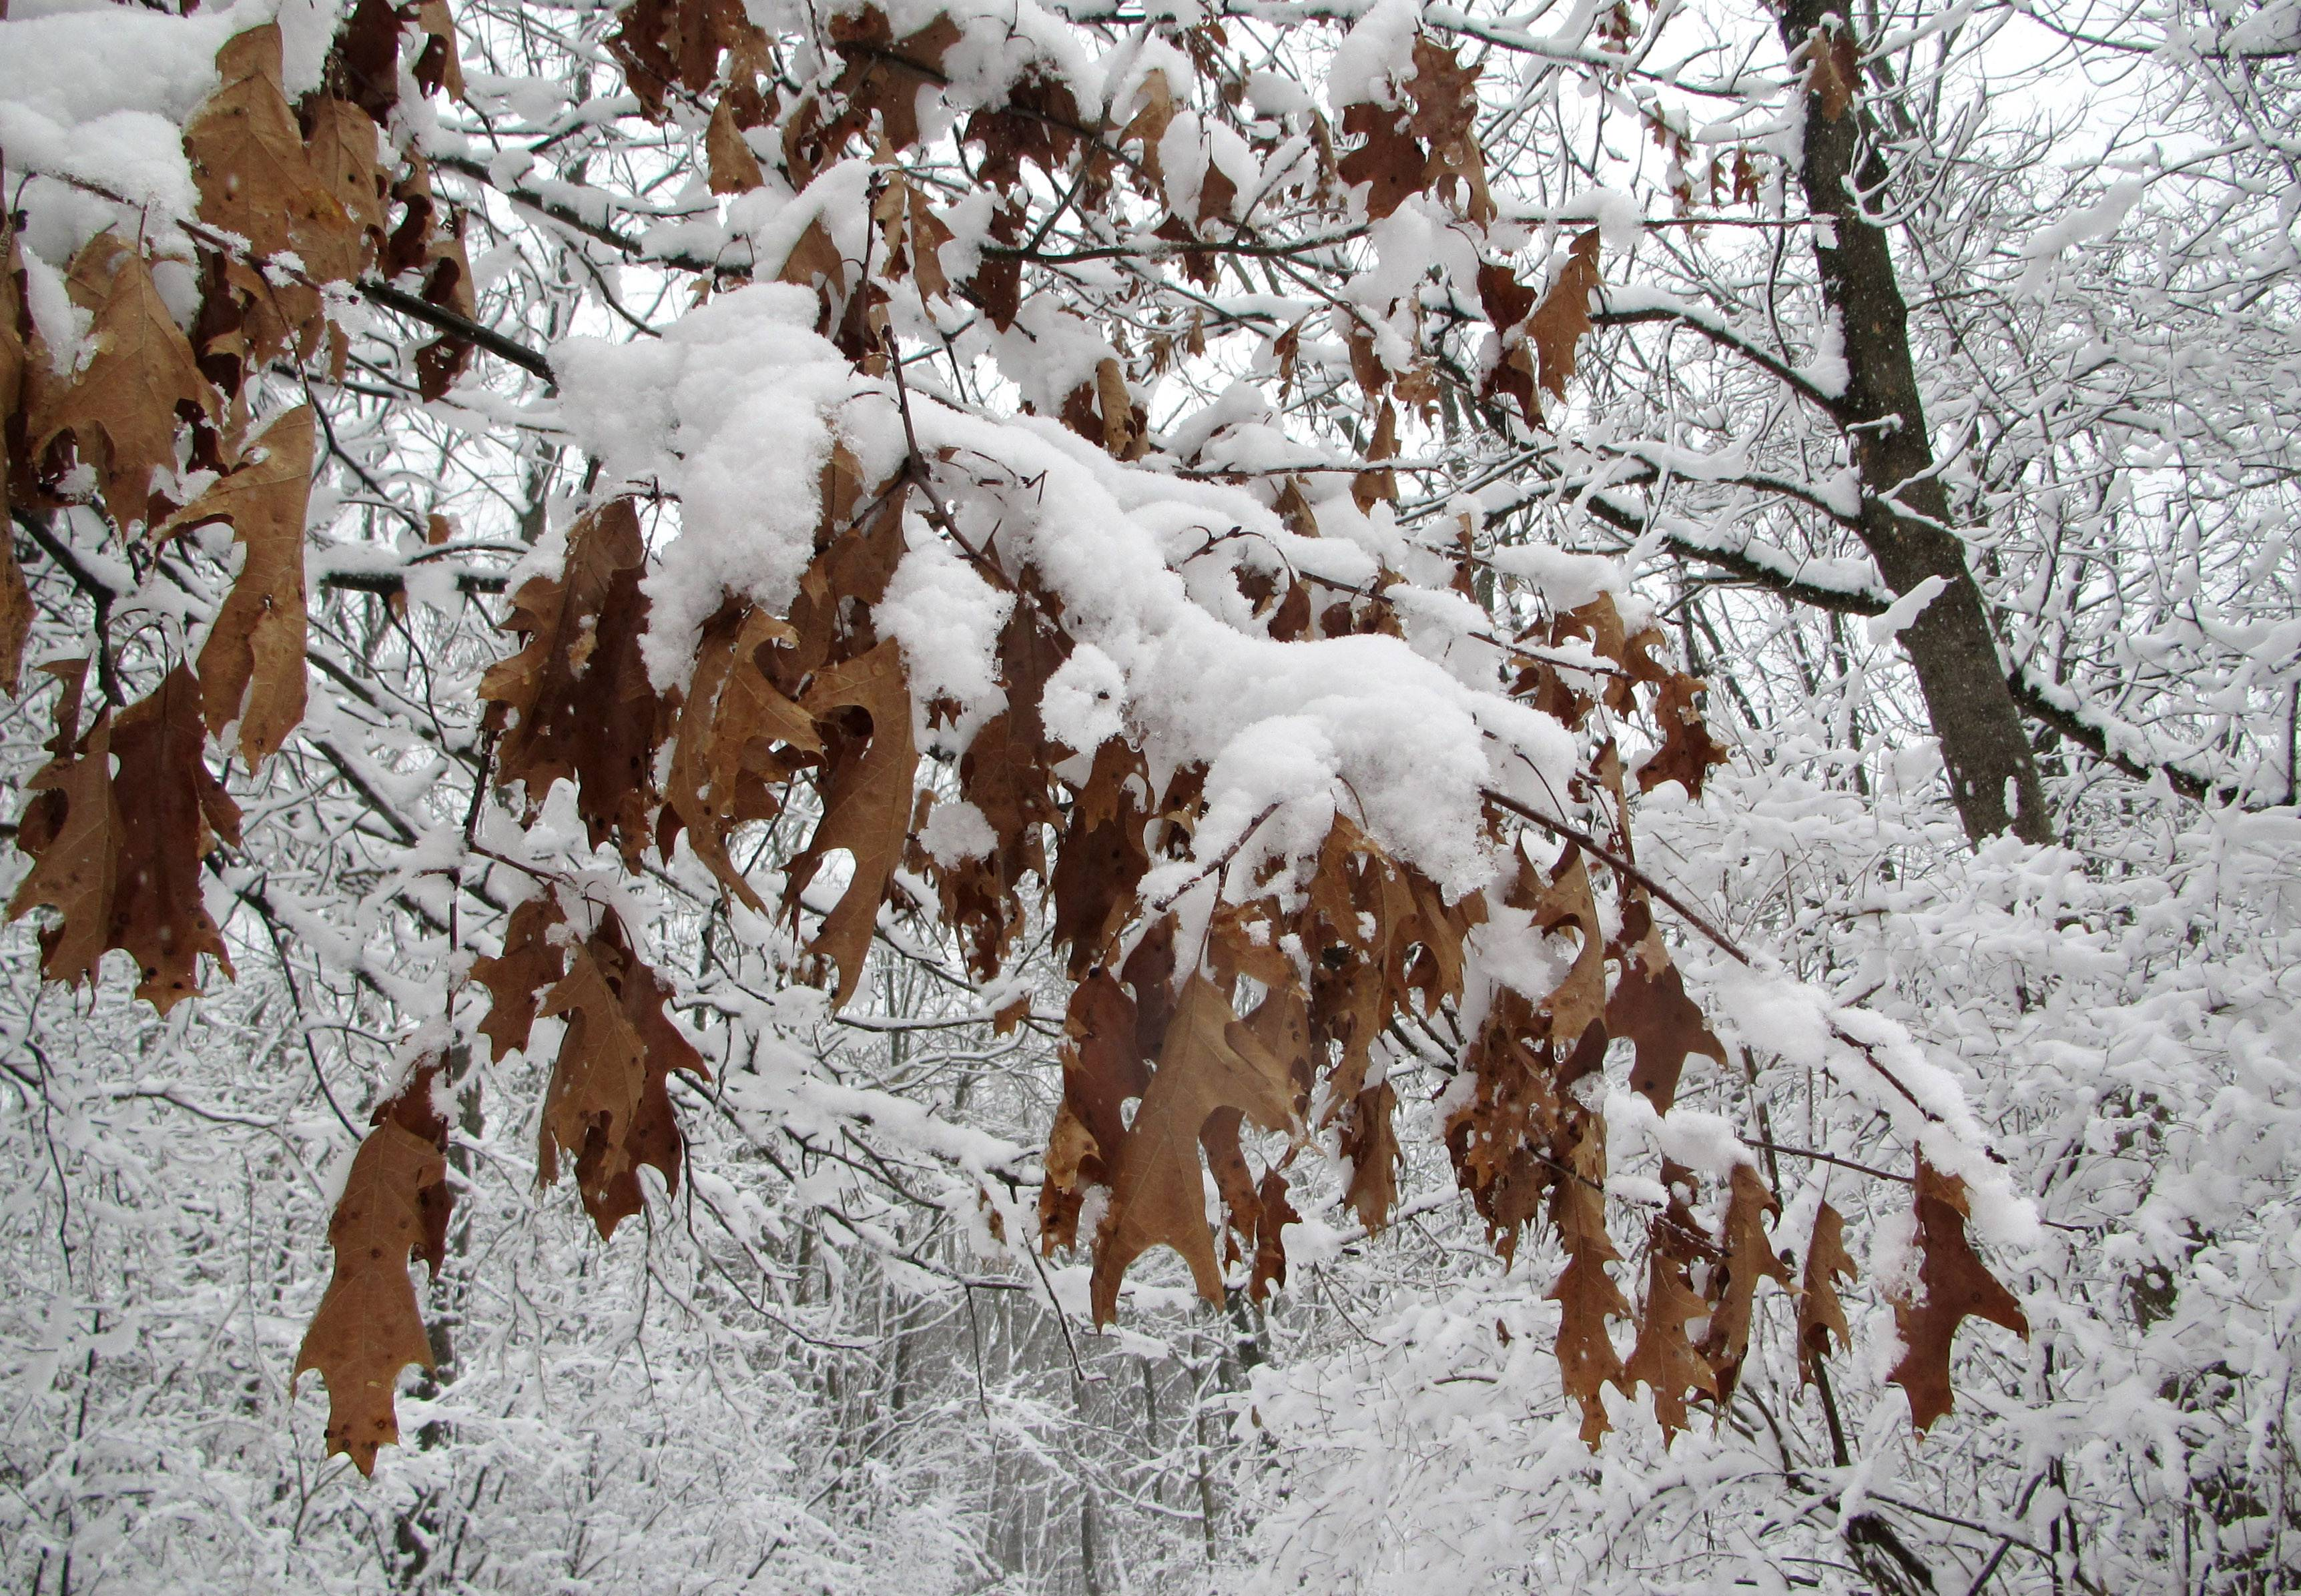 Snow blankets oak leaves still hanging from branches at LeRoy Oakes Forest Preserve in St. Charles. Readers asked naturalist Valerie Blaine why some trees don't lose all of their leaves in the winter.